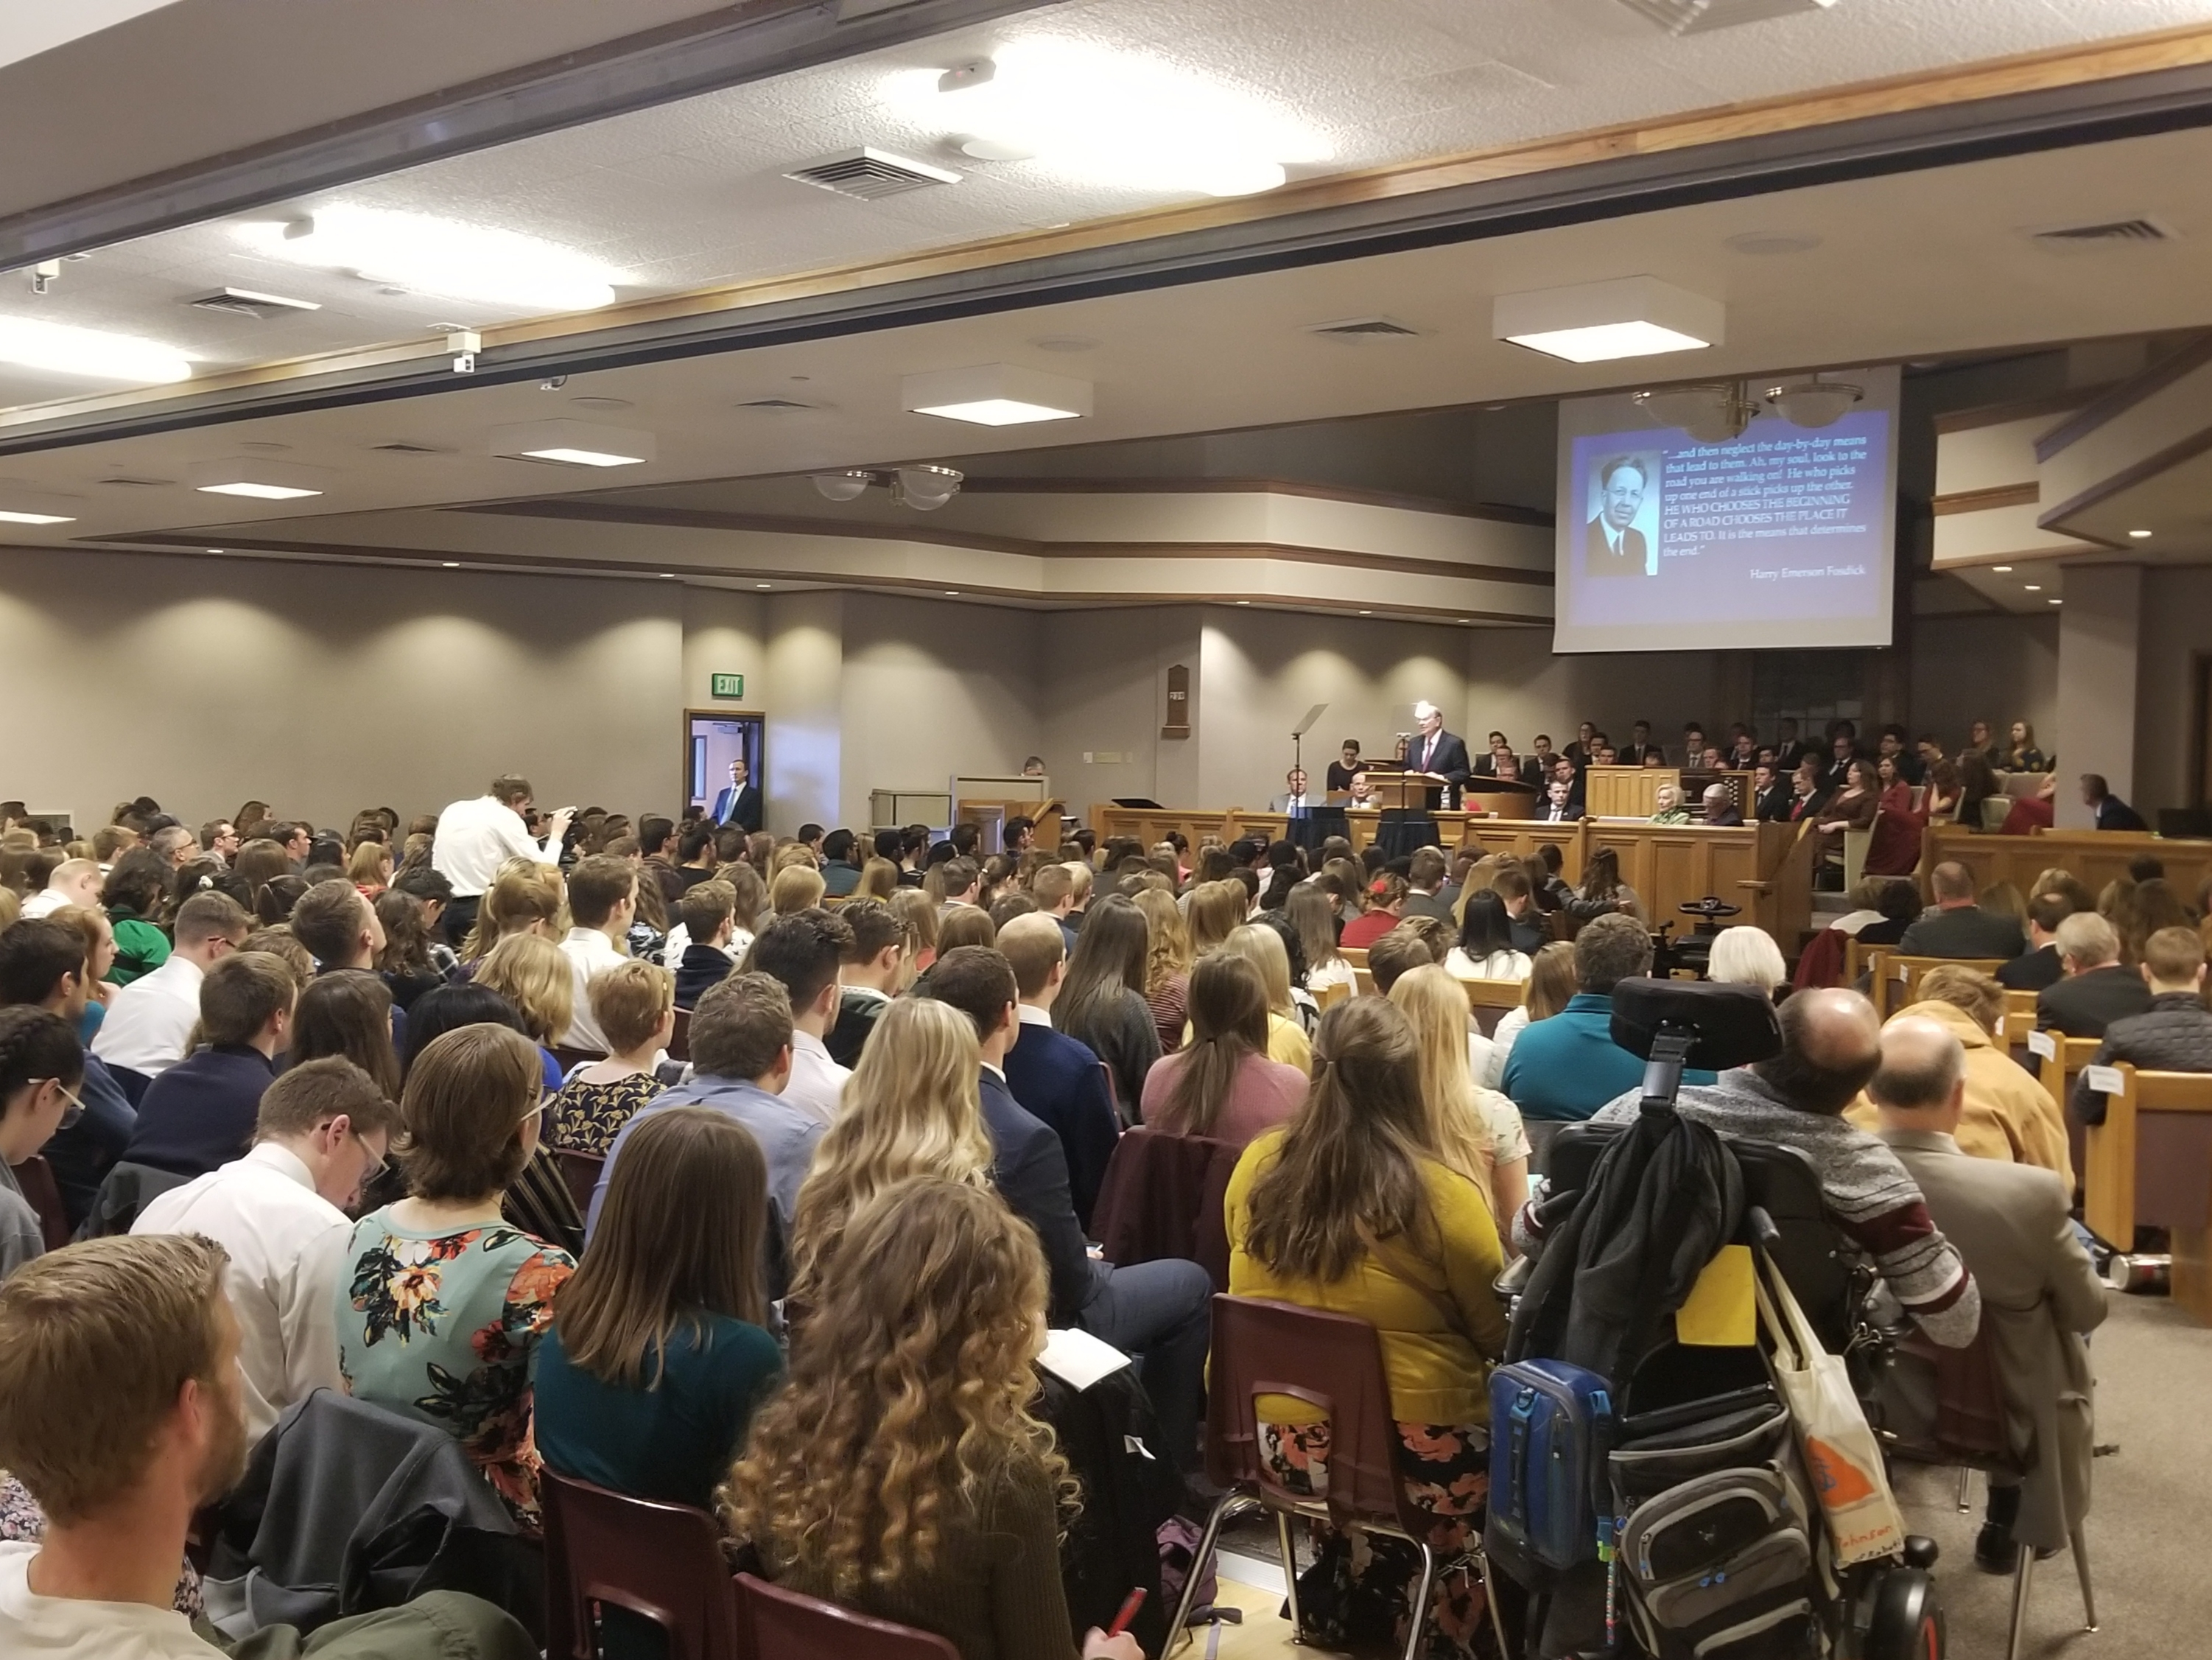 A capacity crowd in the Utah Valley Institute chapel and cultural hall listen to Elder Quentin L. Cook of the Quorum of the Twelve Apostles during a Friday, Feb. 1, 2019, devotional on the Utah Valley University campus in Orem, Utah.